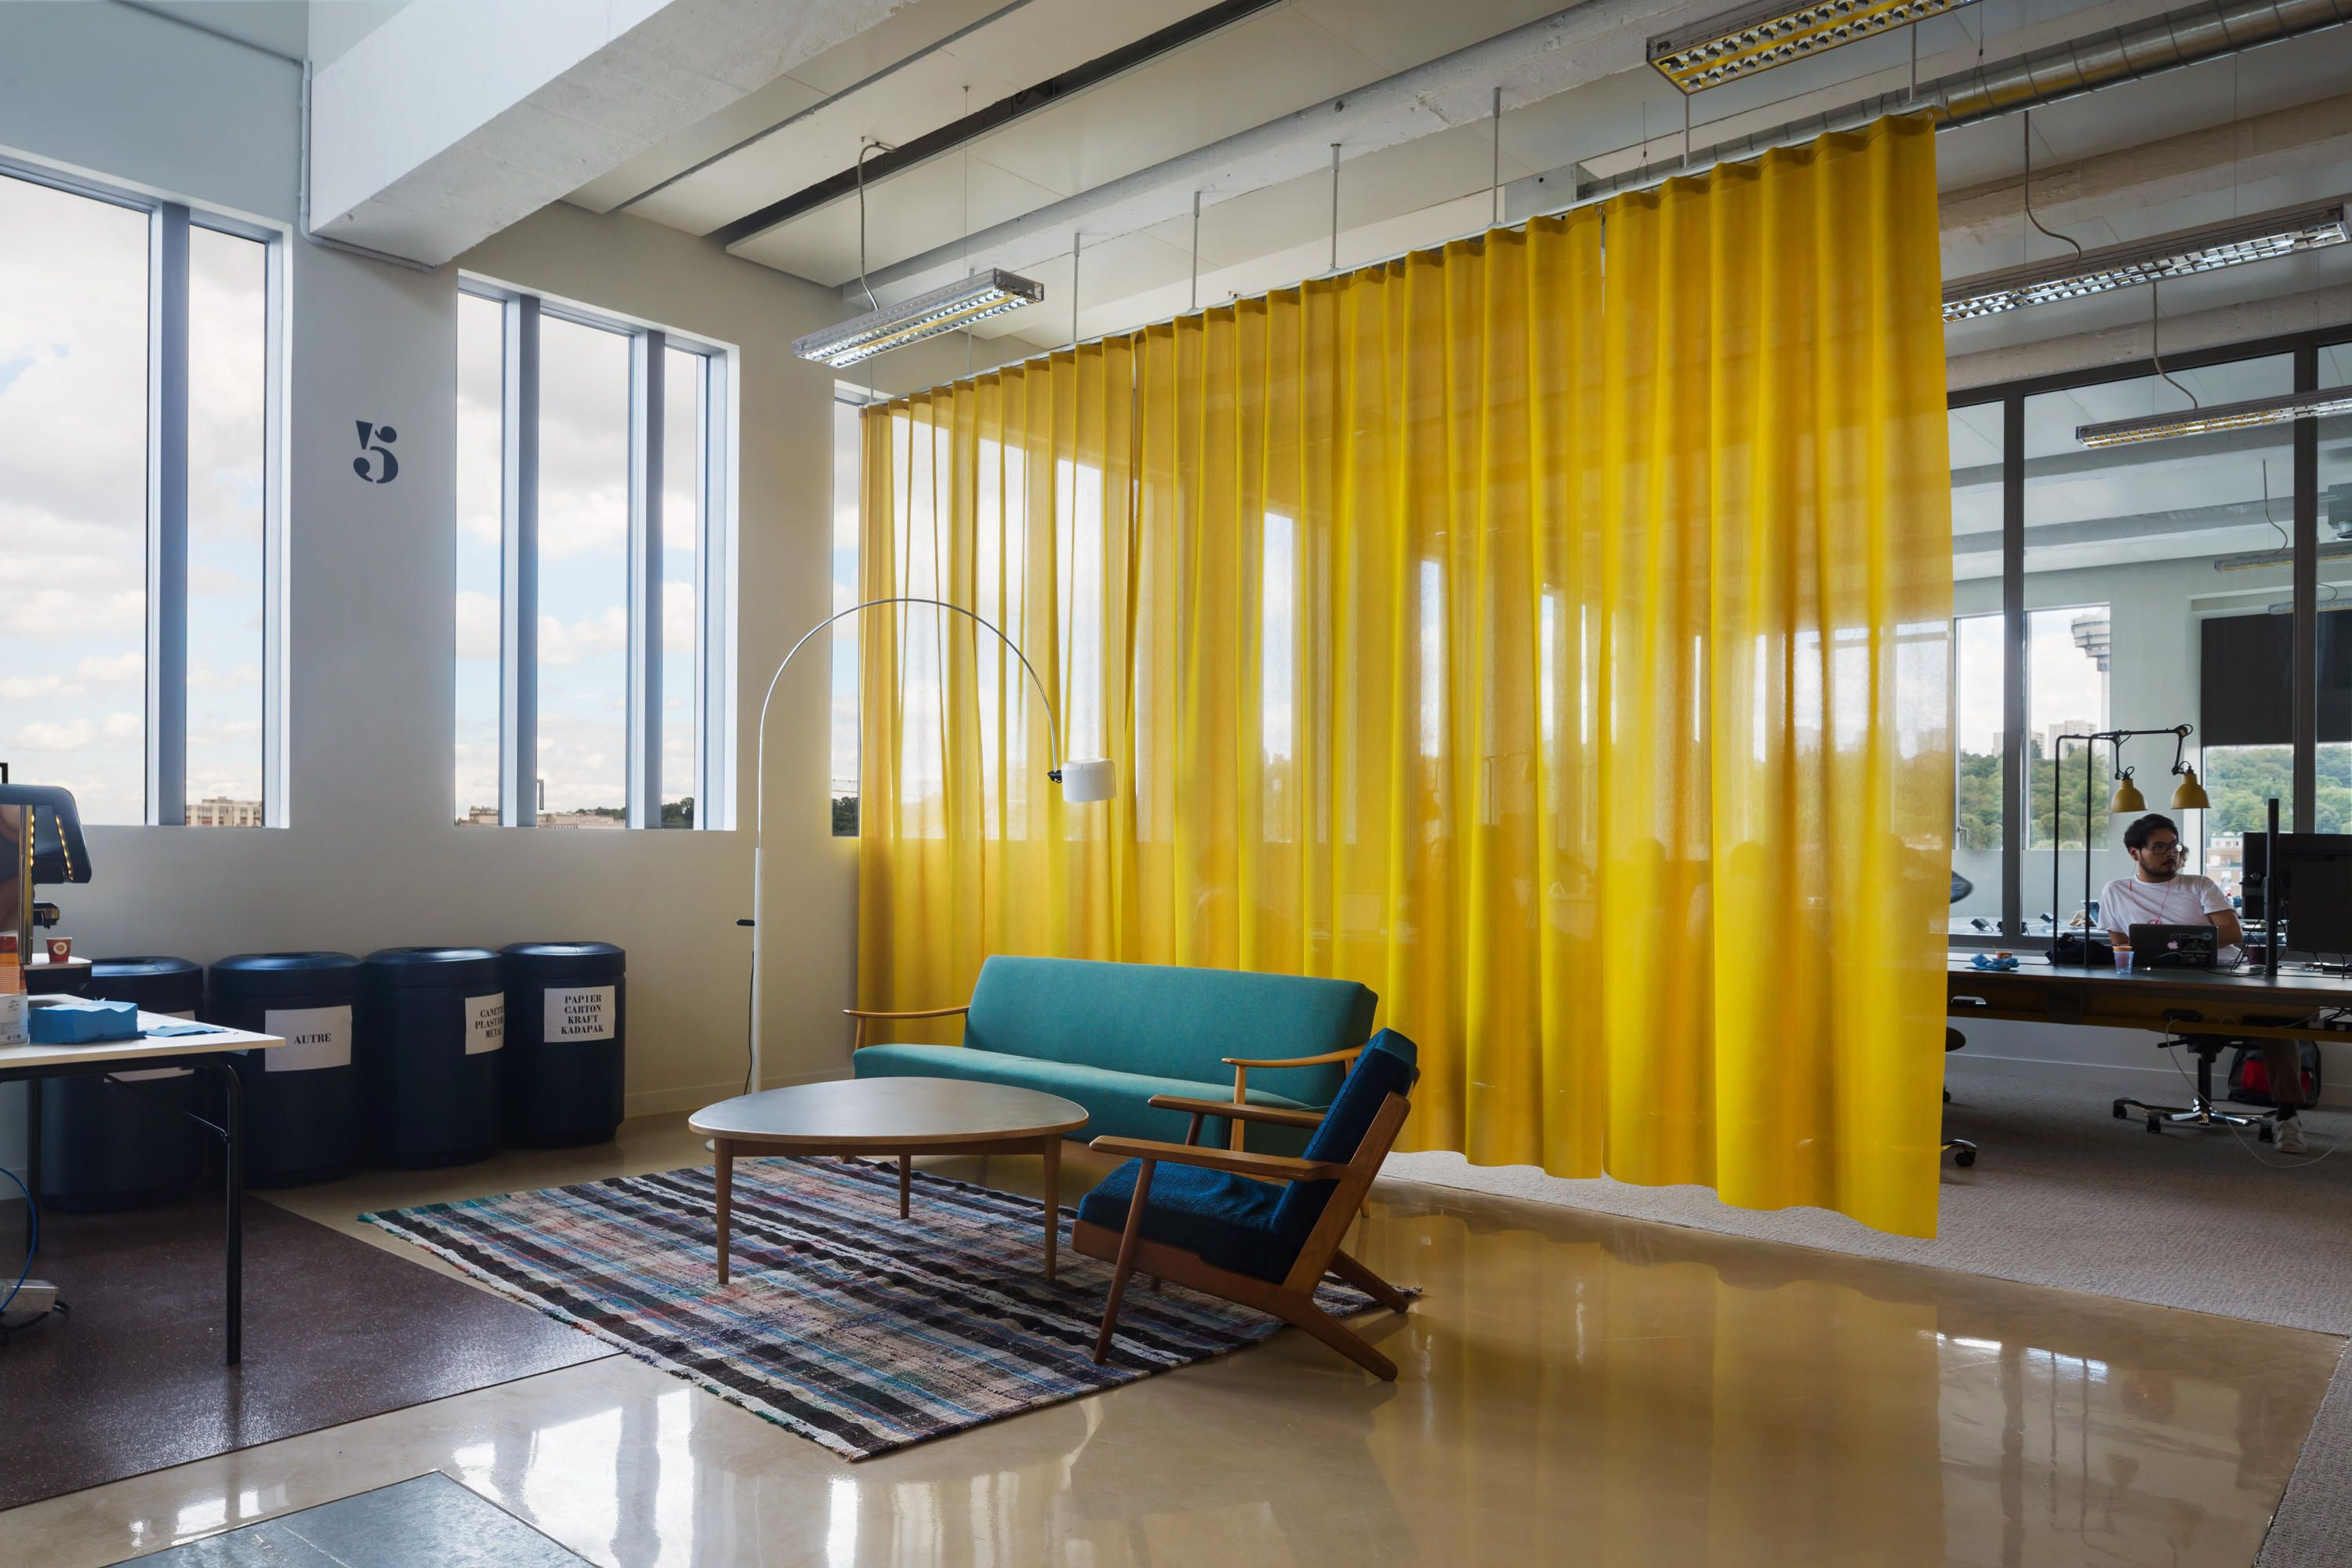 Acoustic curtains by texaa architonic nowonarchitonic interior design furniture